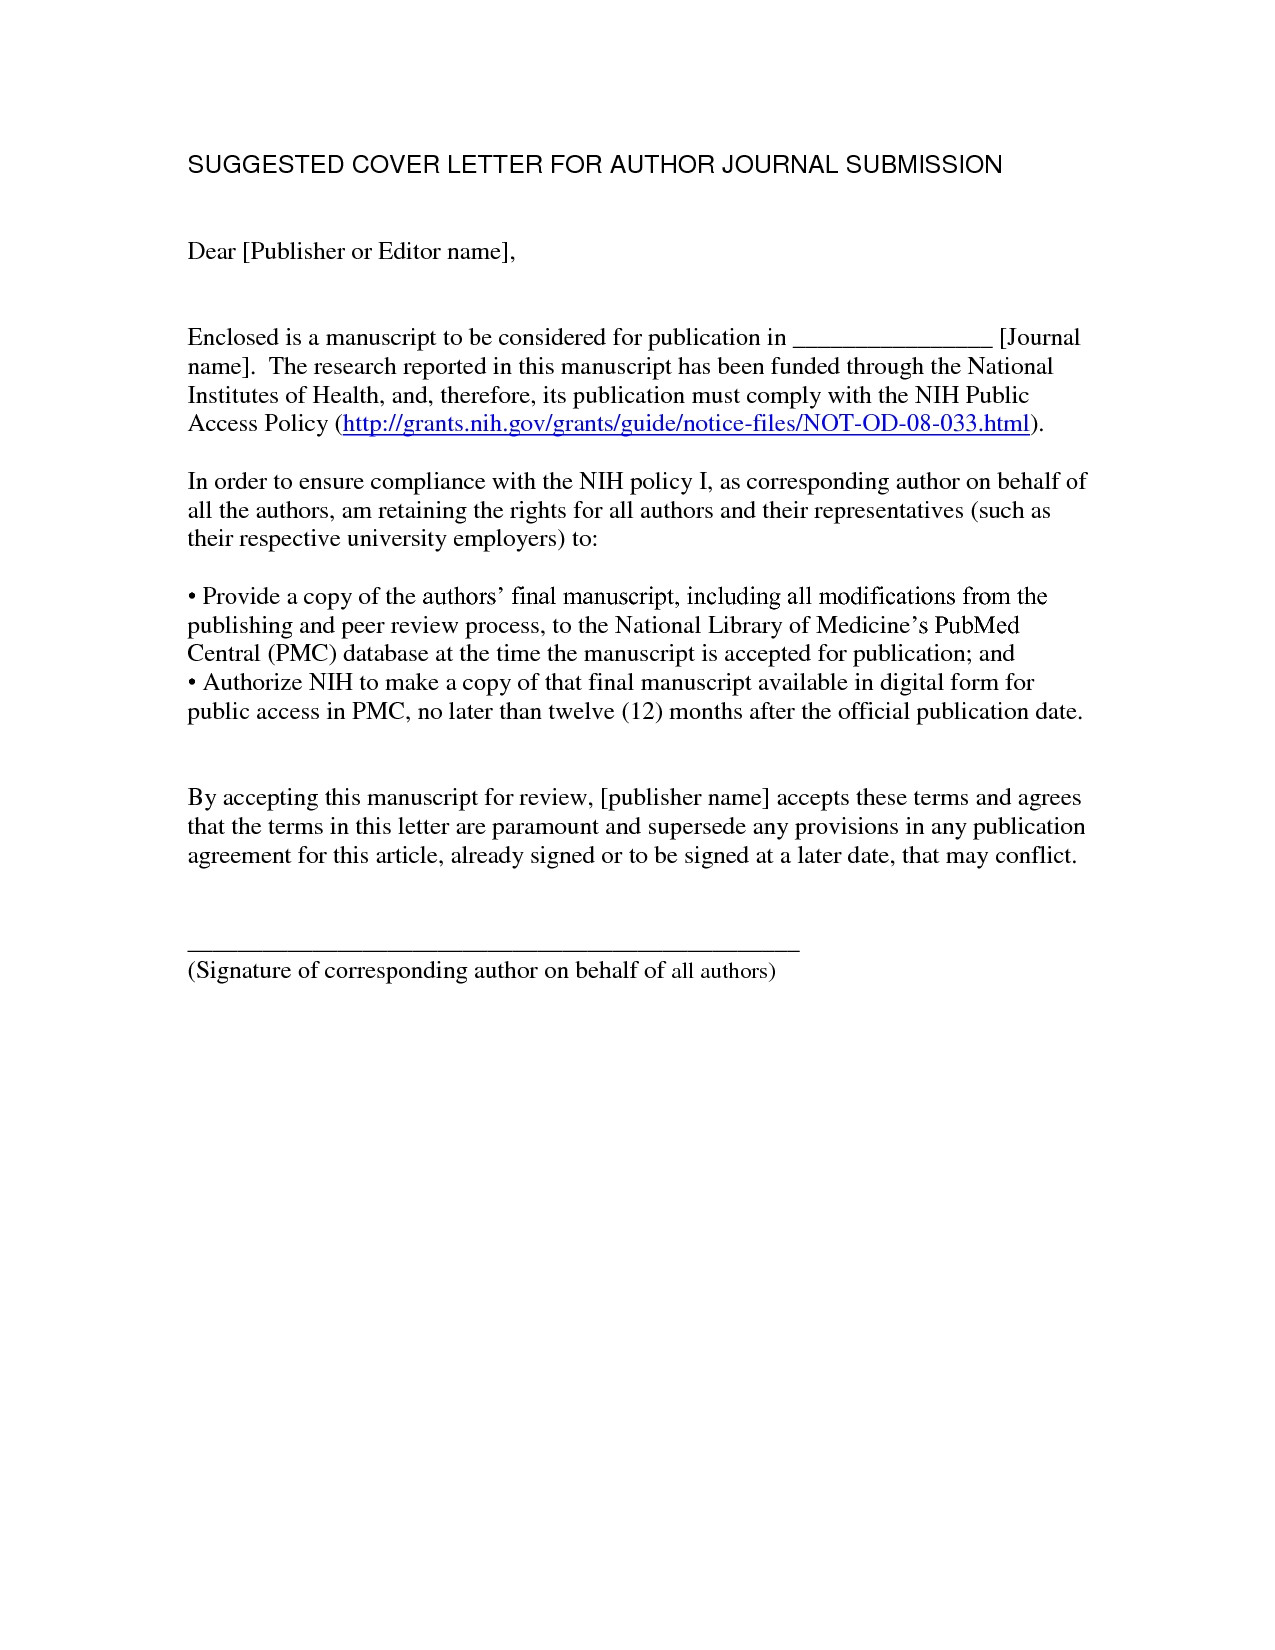 Articles On Cover Letters Journal Article Submission Cover Letter the Letter Sample